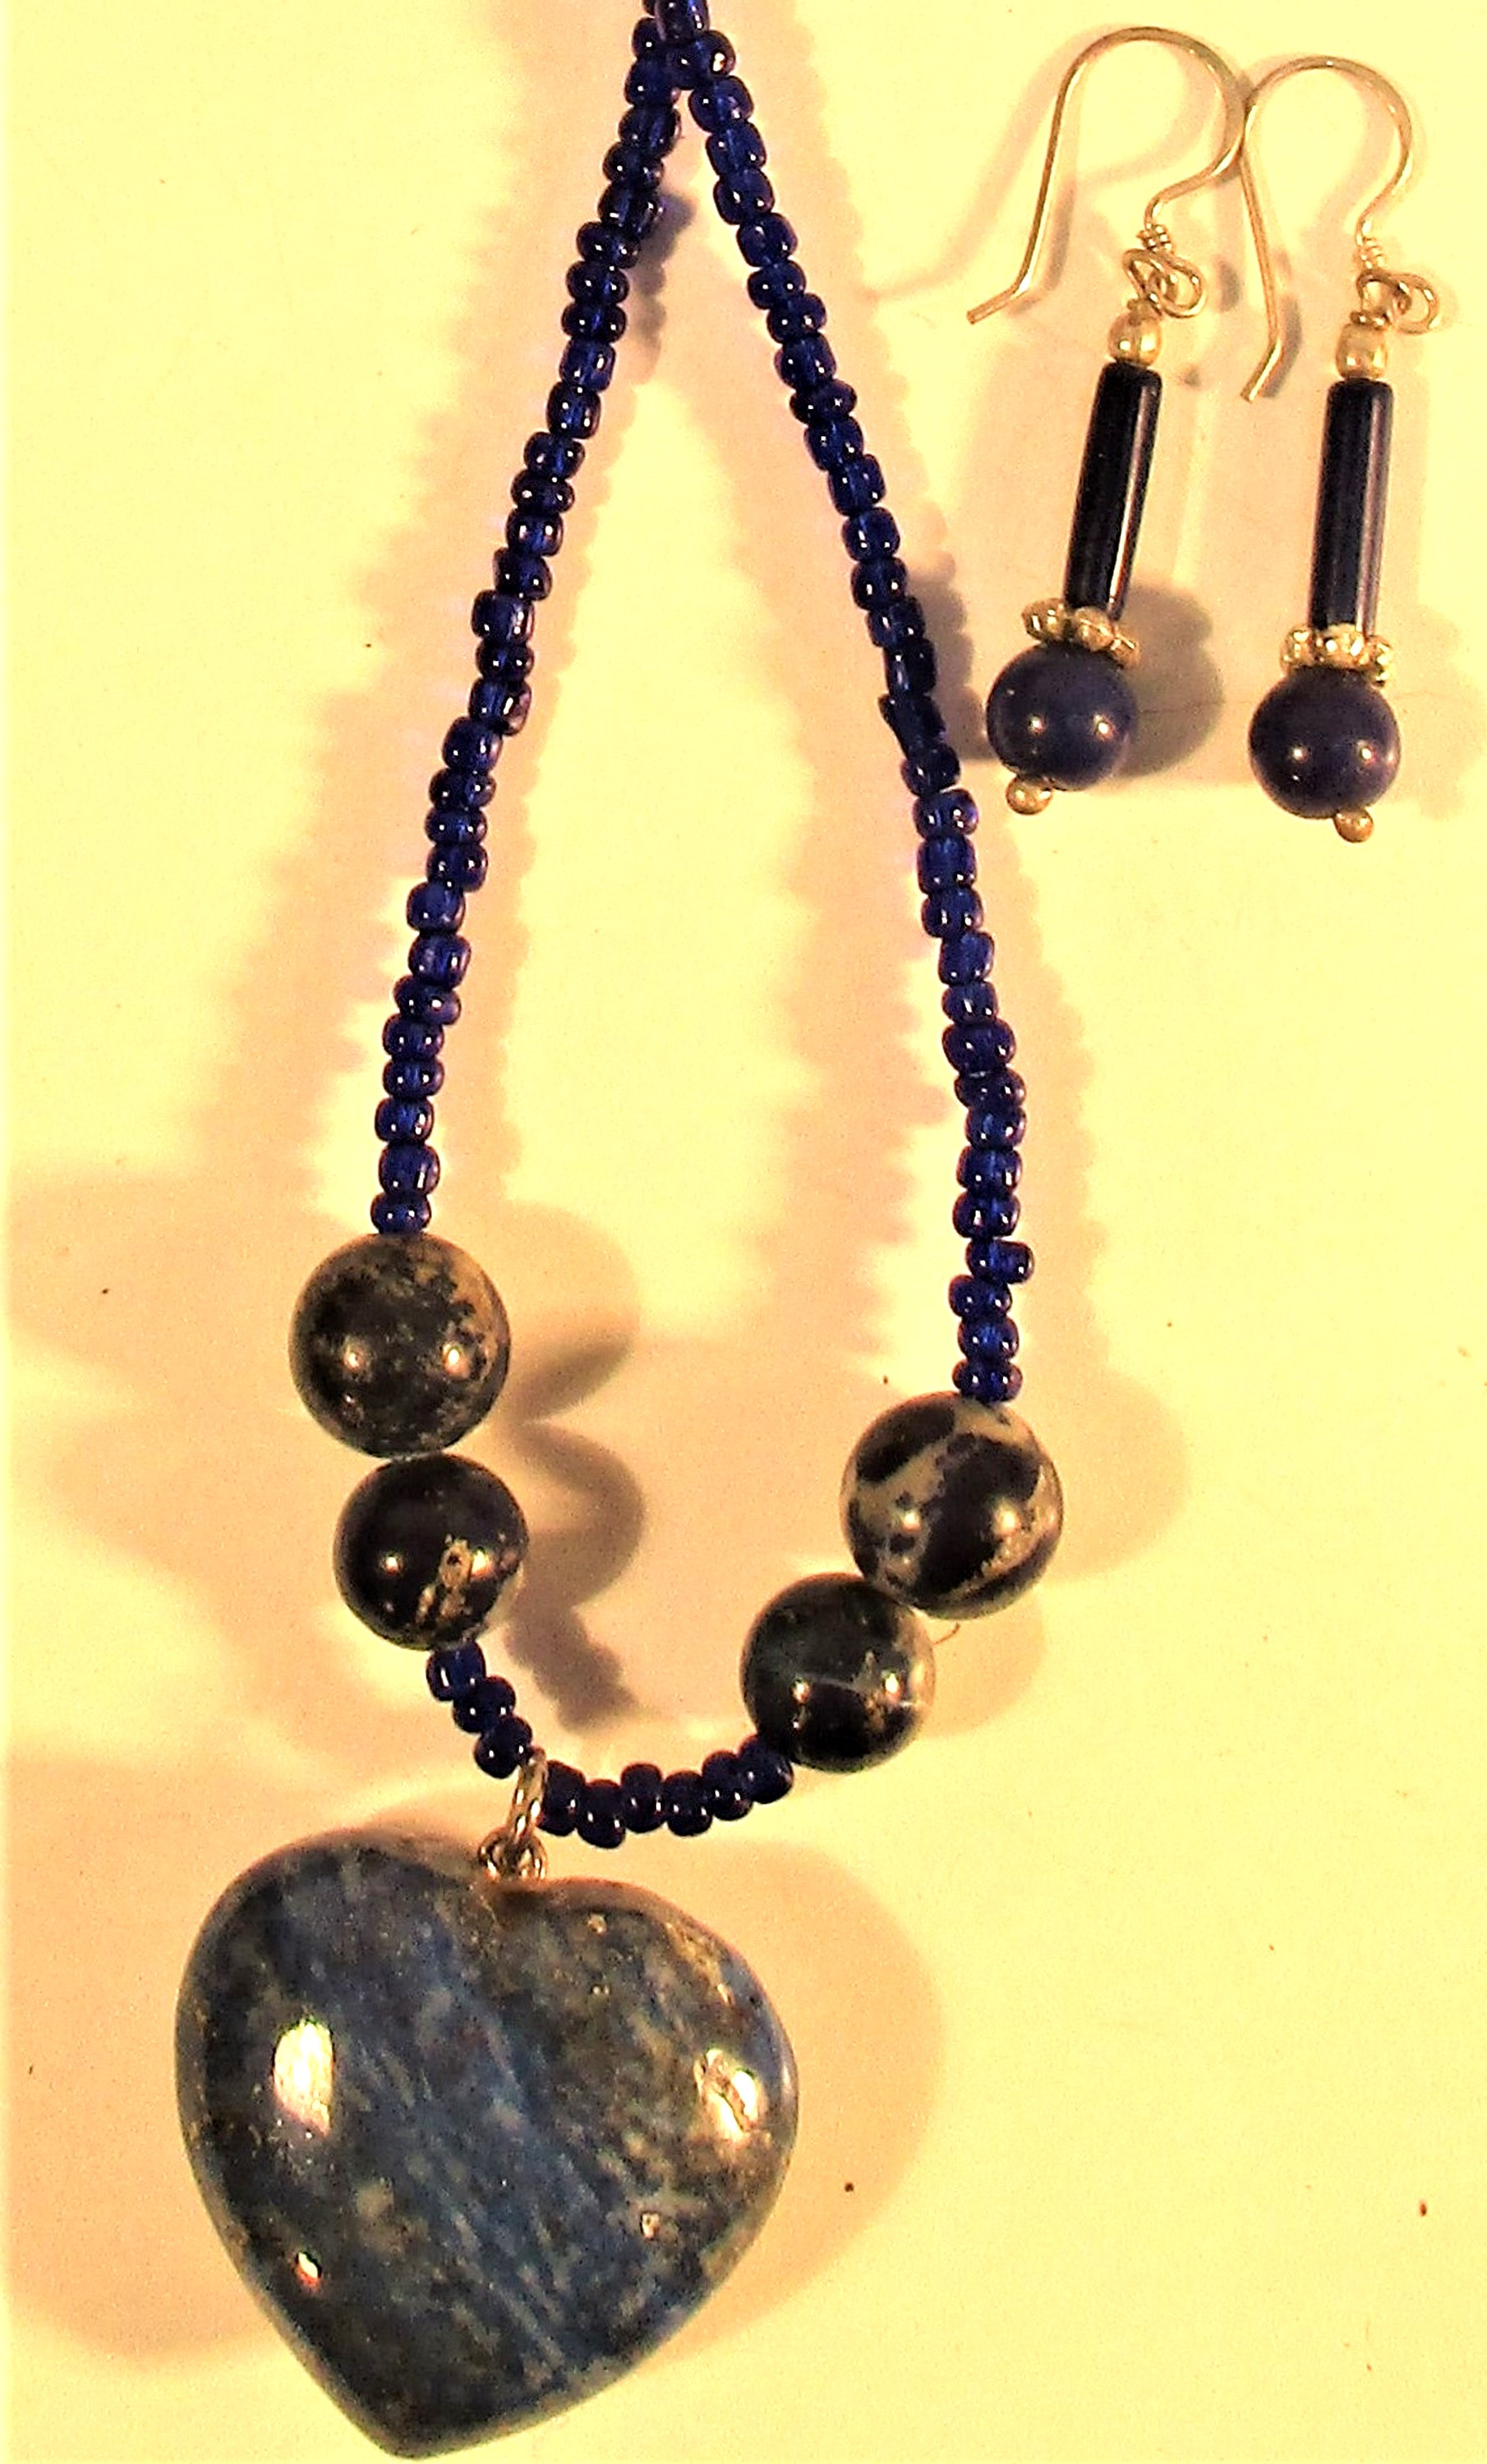 Lapis lazuli necklace with heart shaped pendant, black beads and pair of lapis stone earrings - Image 2 of 2